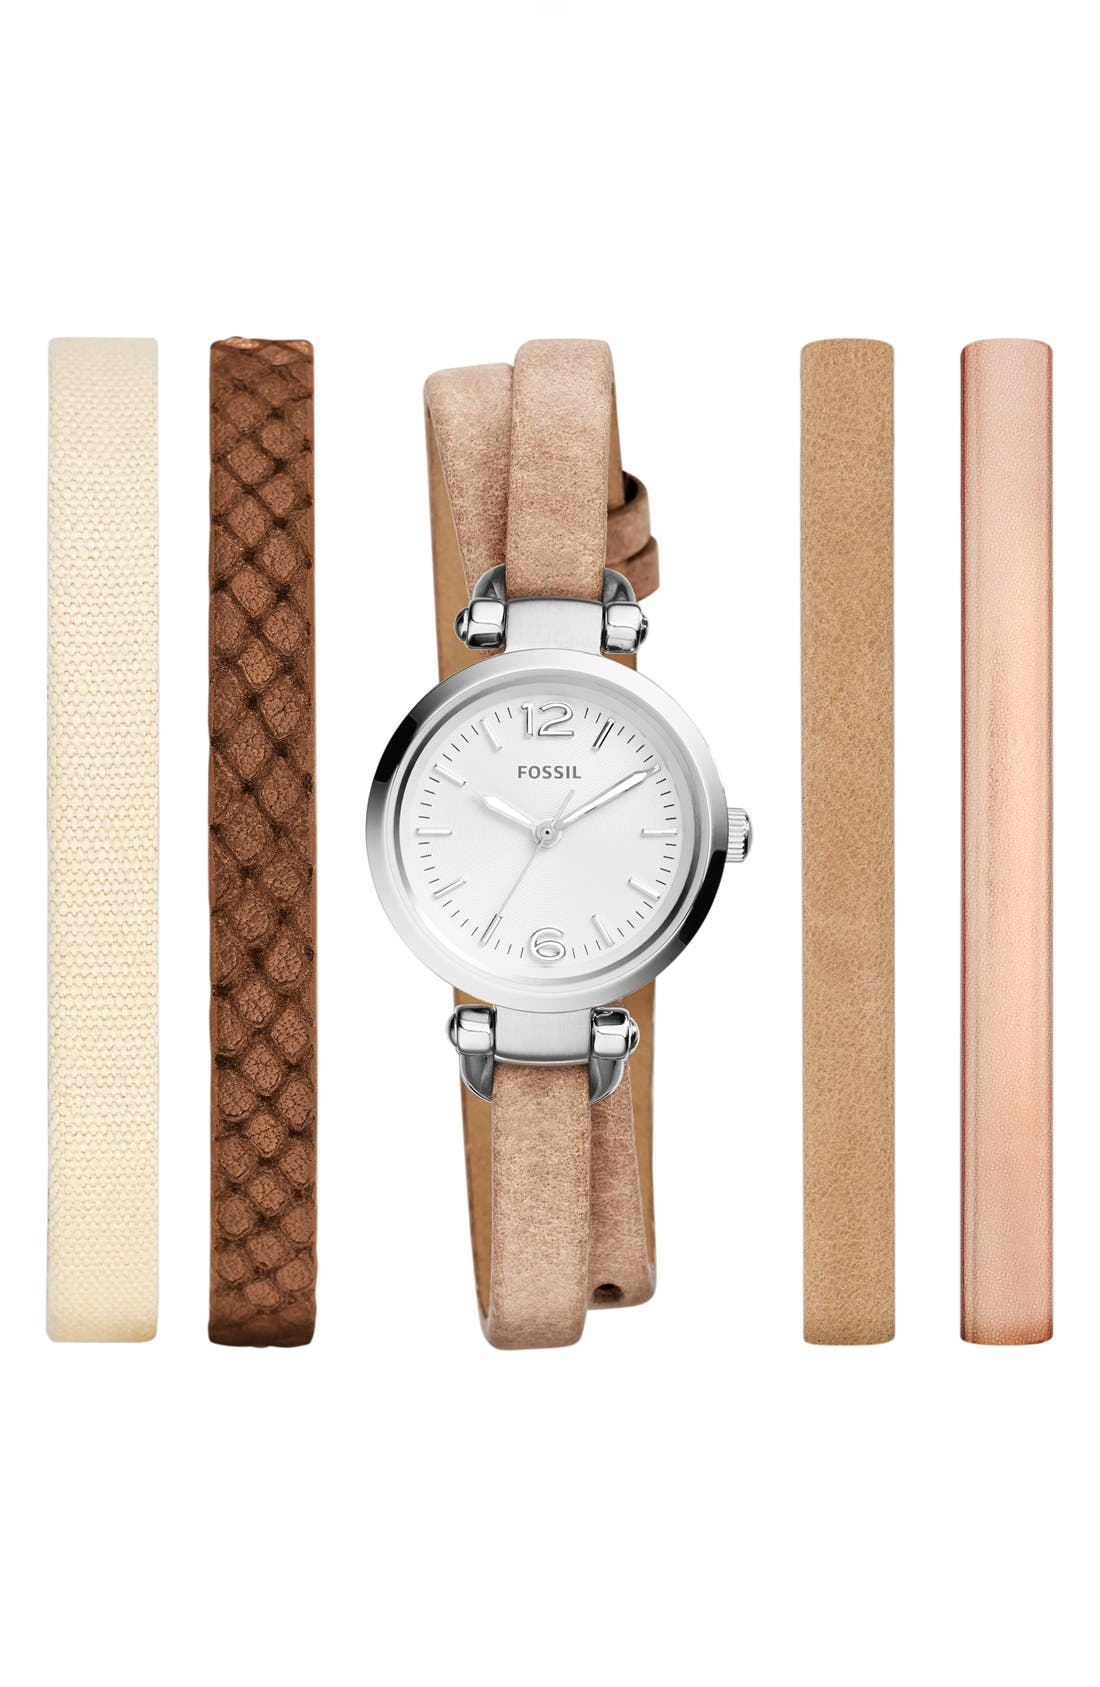 Alternate Image 1 Selected - Fossil 'Georgia' Round Watch & Interchangeable Strap Set, 26mm